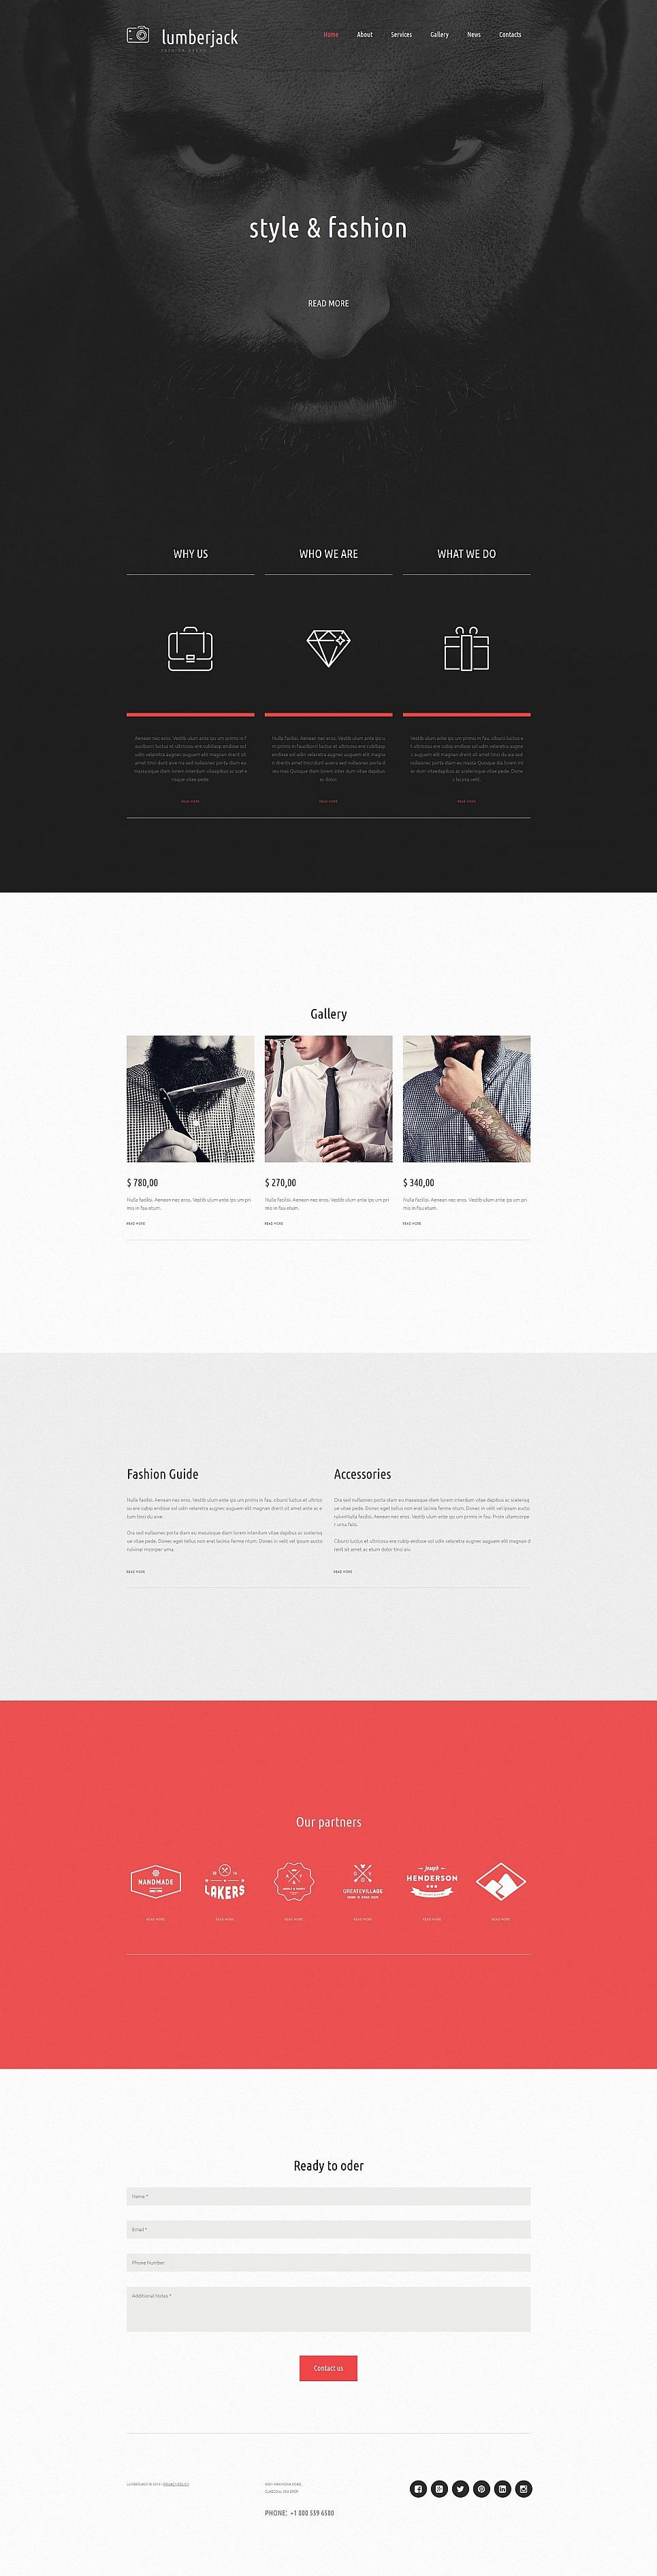 Online Fashion Brand Template - image